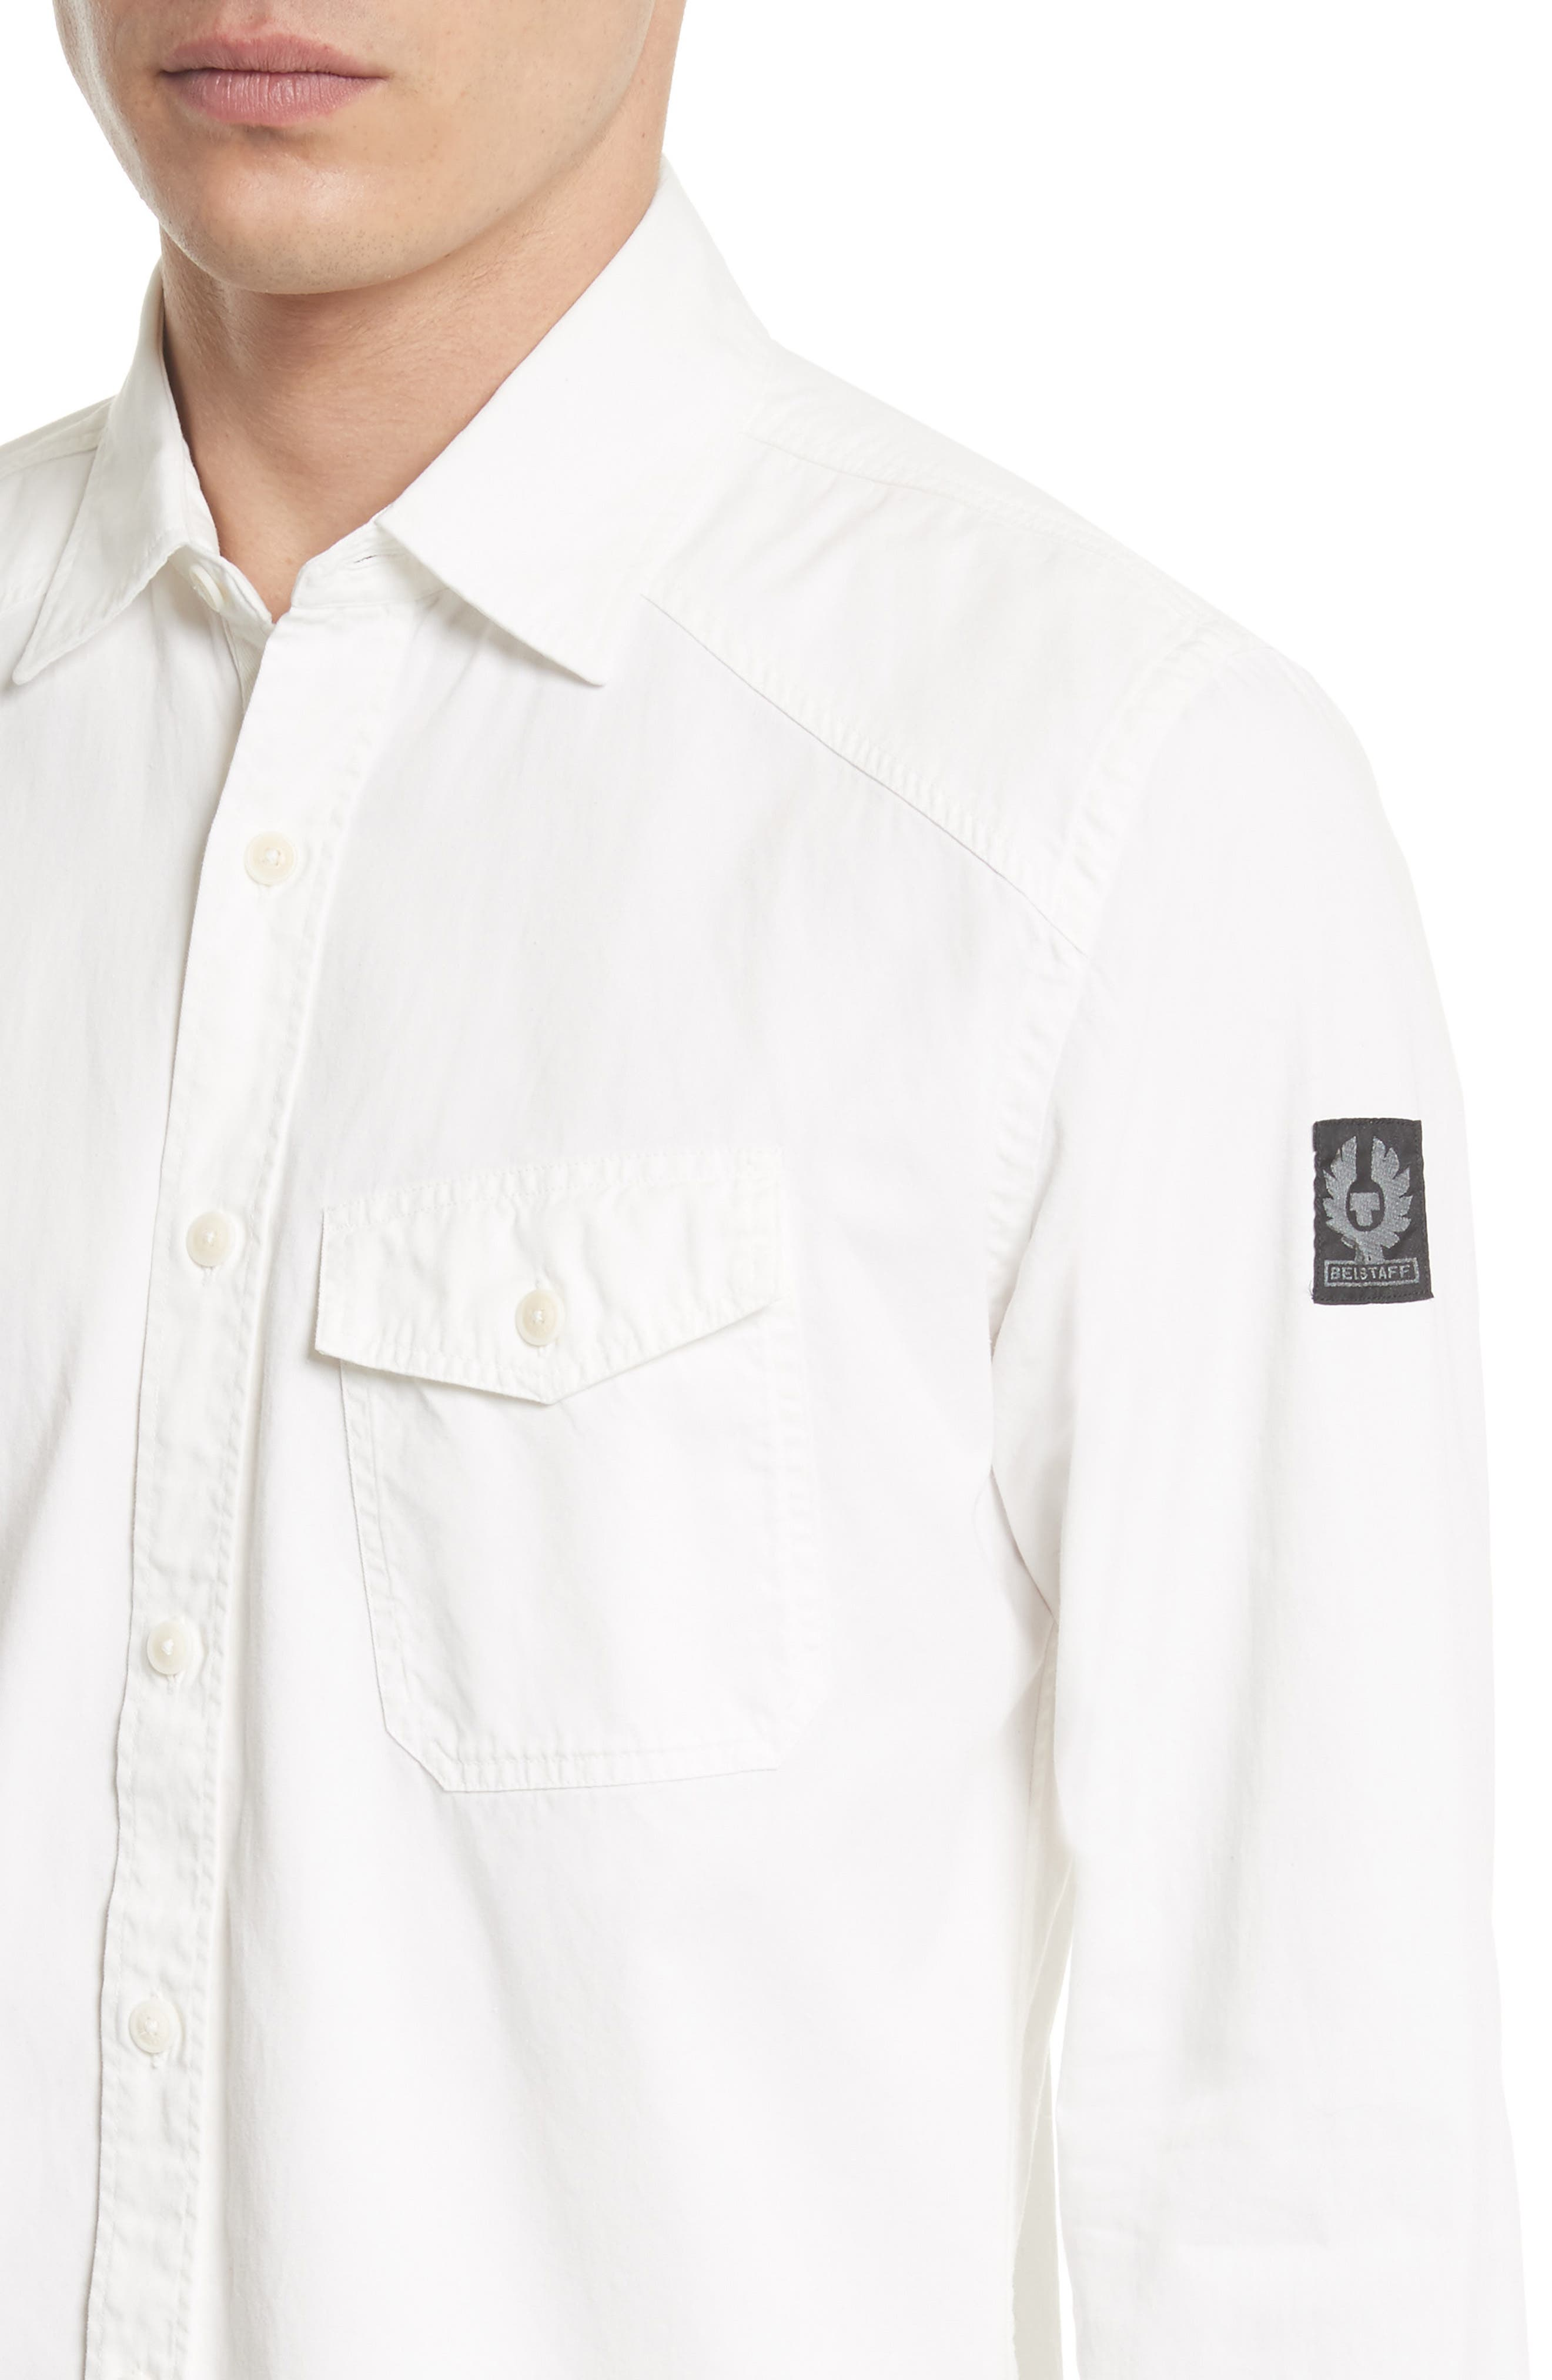 Steadway Extra Slim Fit Sport Shirt,                             Alternate thumbnail 22, color,